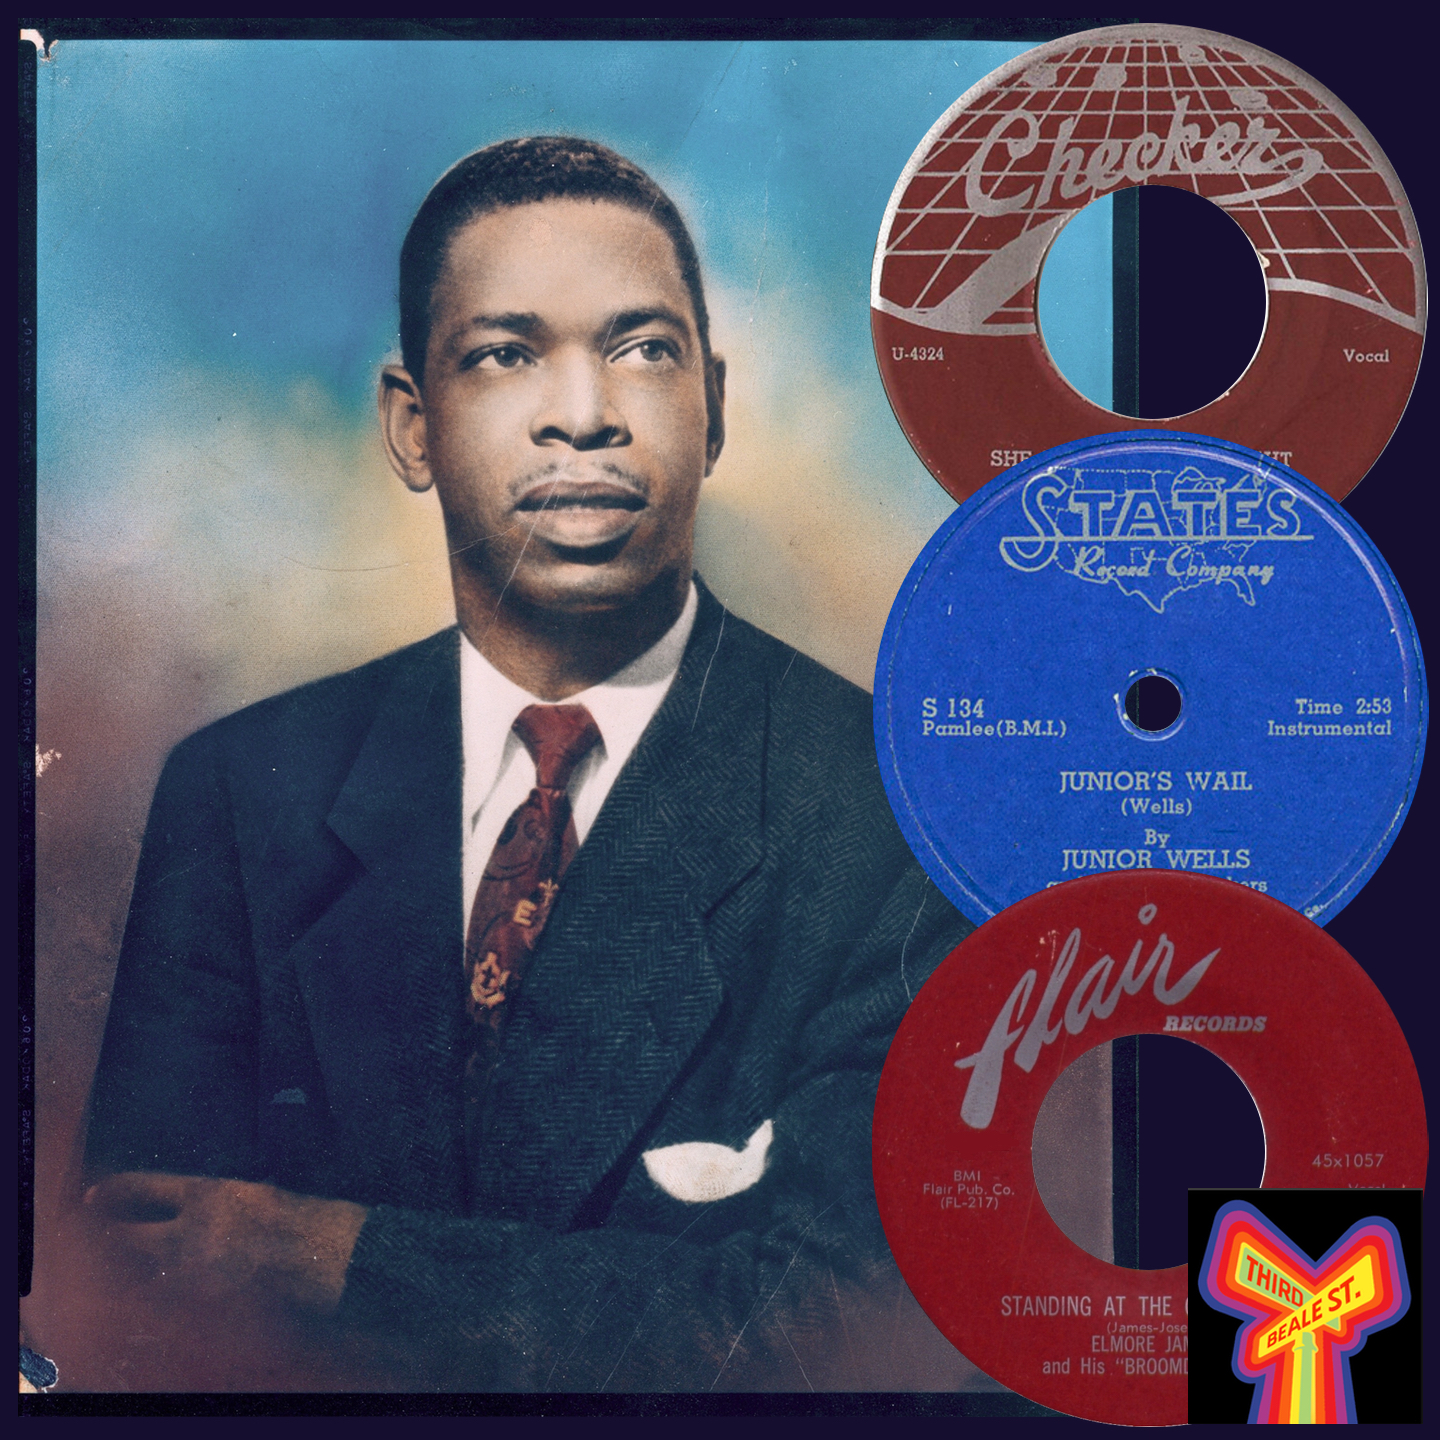 Caption: Hand-painted photo of Elmore James courtesy of Blues Unlimited magazine.